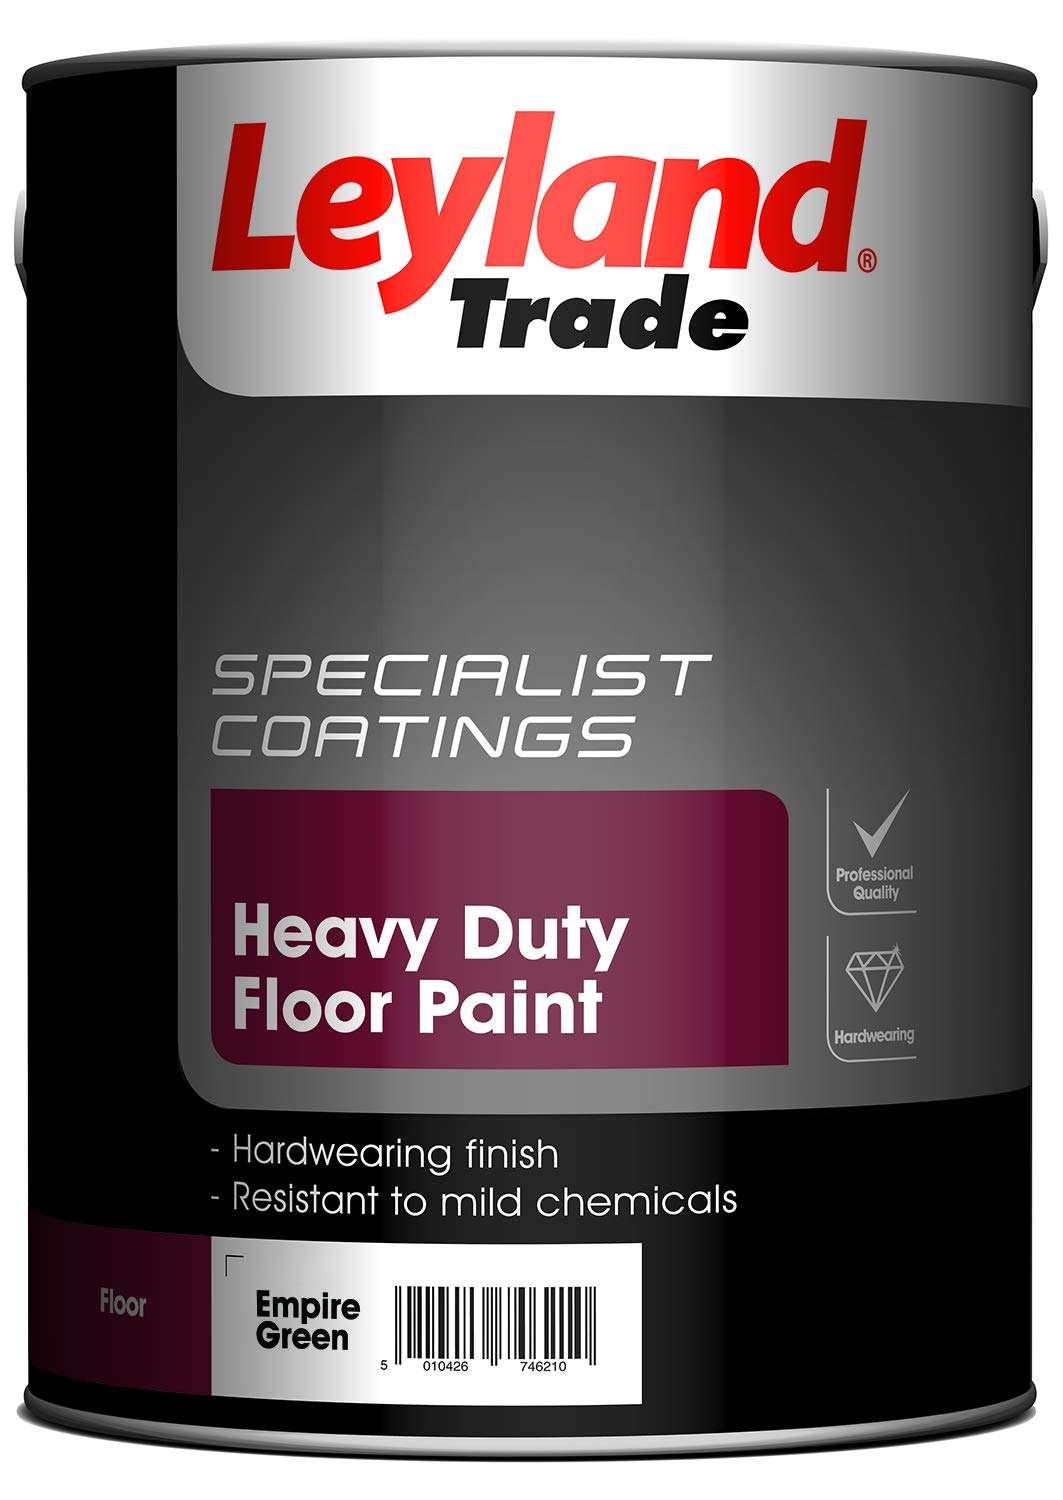 Leyland Trade 264614 Heavy Duty Floor Paint, Empire Green, 5 PPG